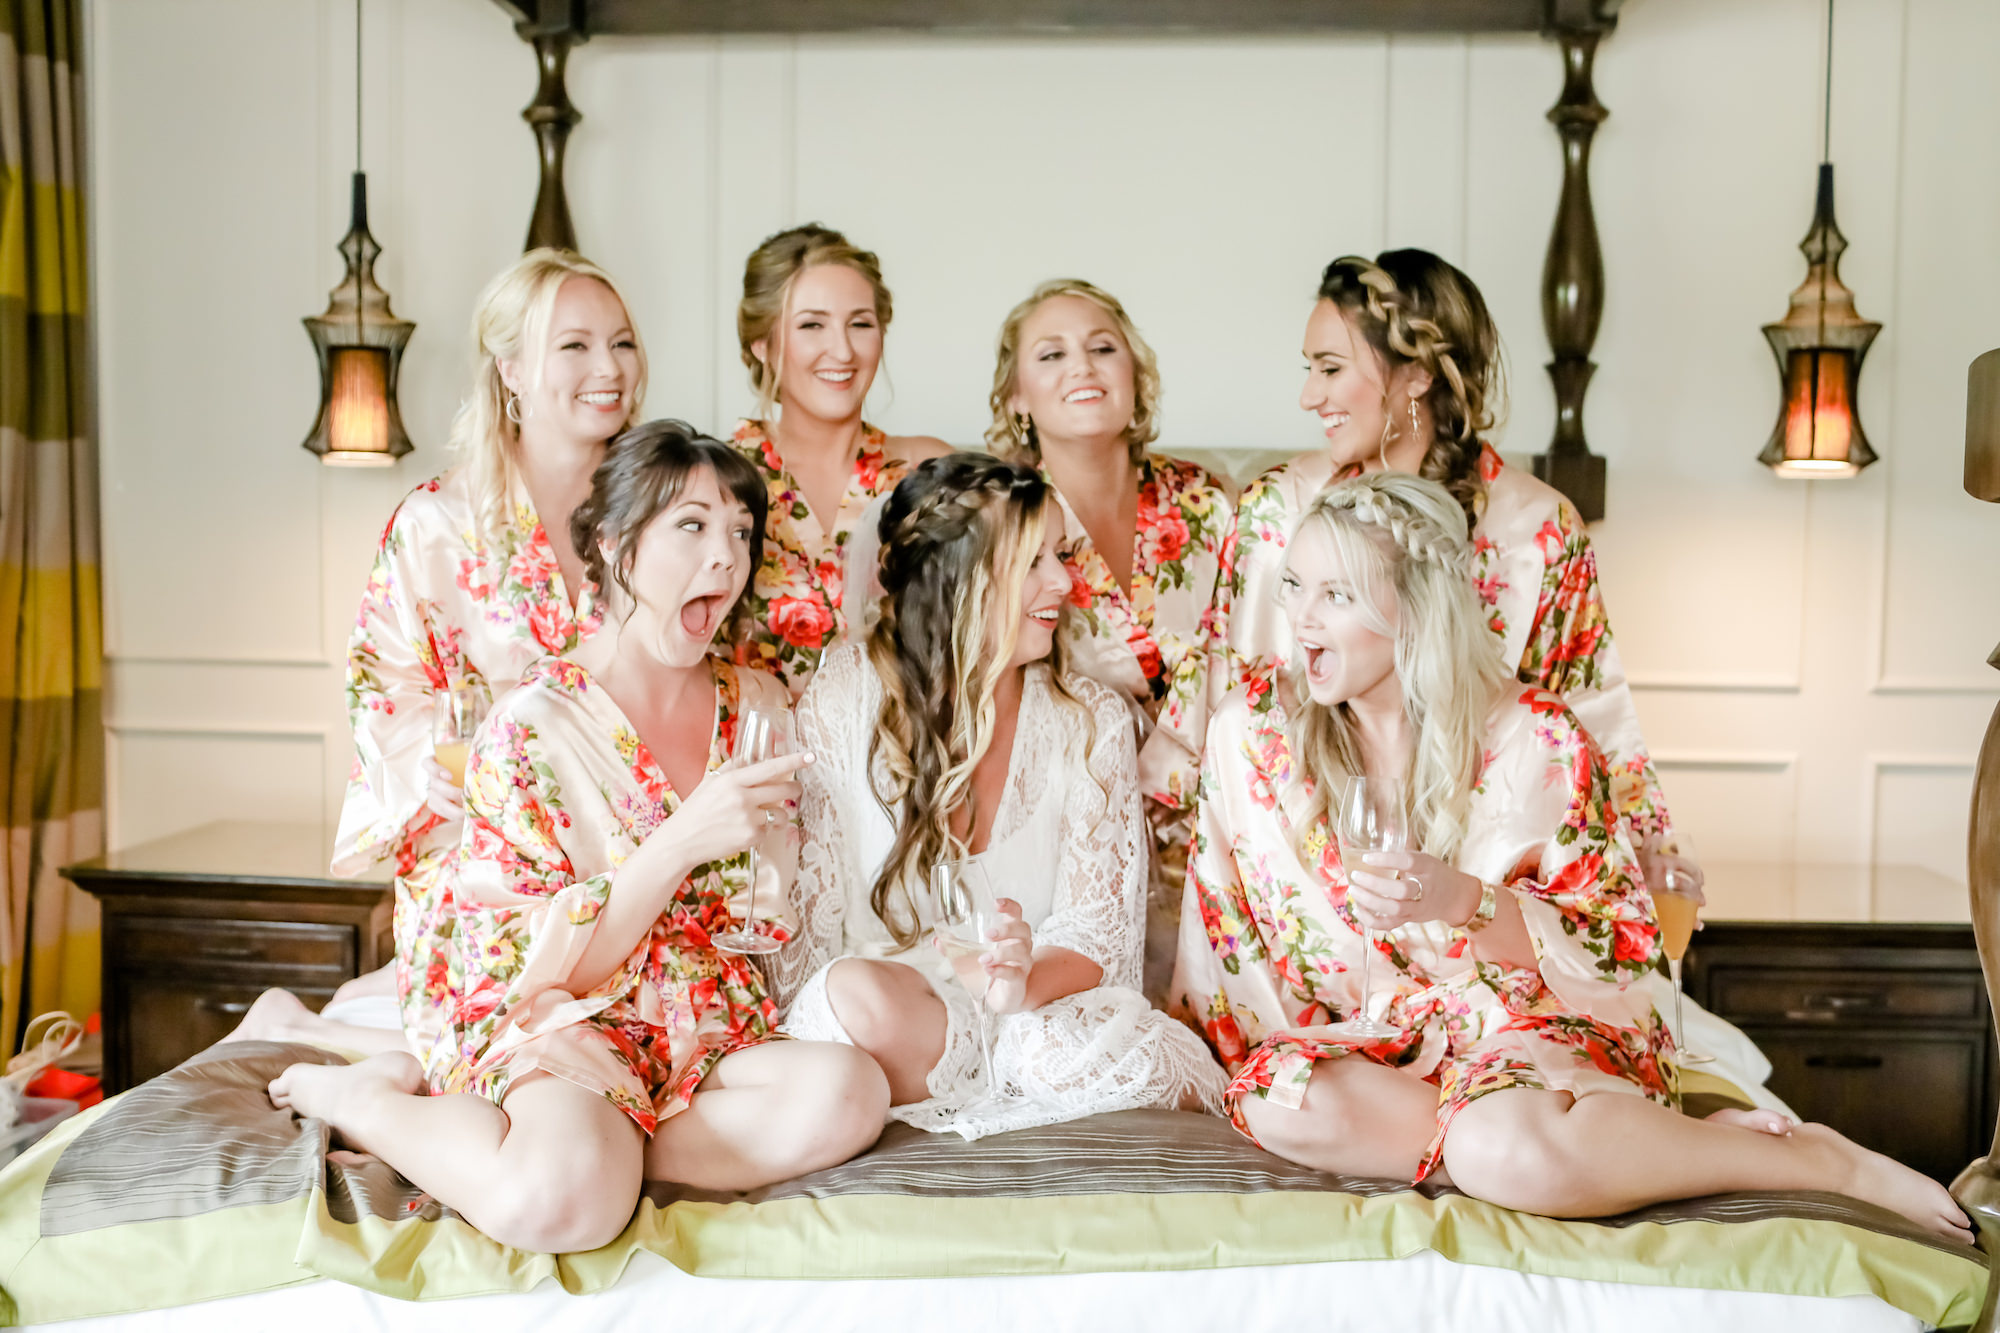 Tampa Bay Bride and Bridesmaid Getting Ready in Silk Floral Robes with Gold, Pink, Red, Yellow and Green, Wearing Braids and Drinking Champagne     Downtown St. Pete Wedding Hair and Make Up Artists Michele Renee The Studio   Tampa Bay Wedding Photographer Lifelong Photography Studio